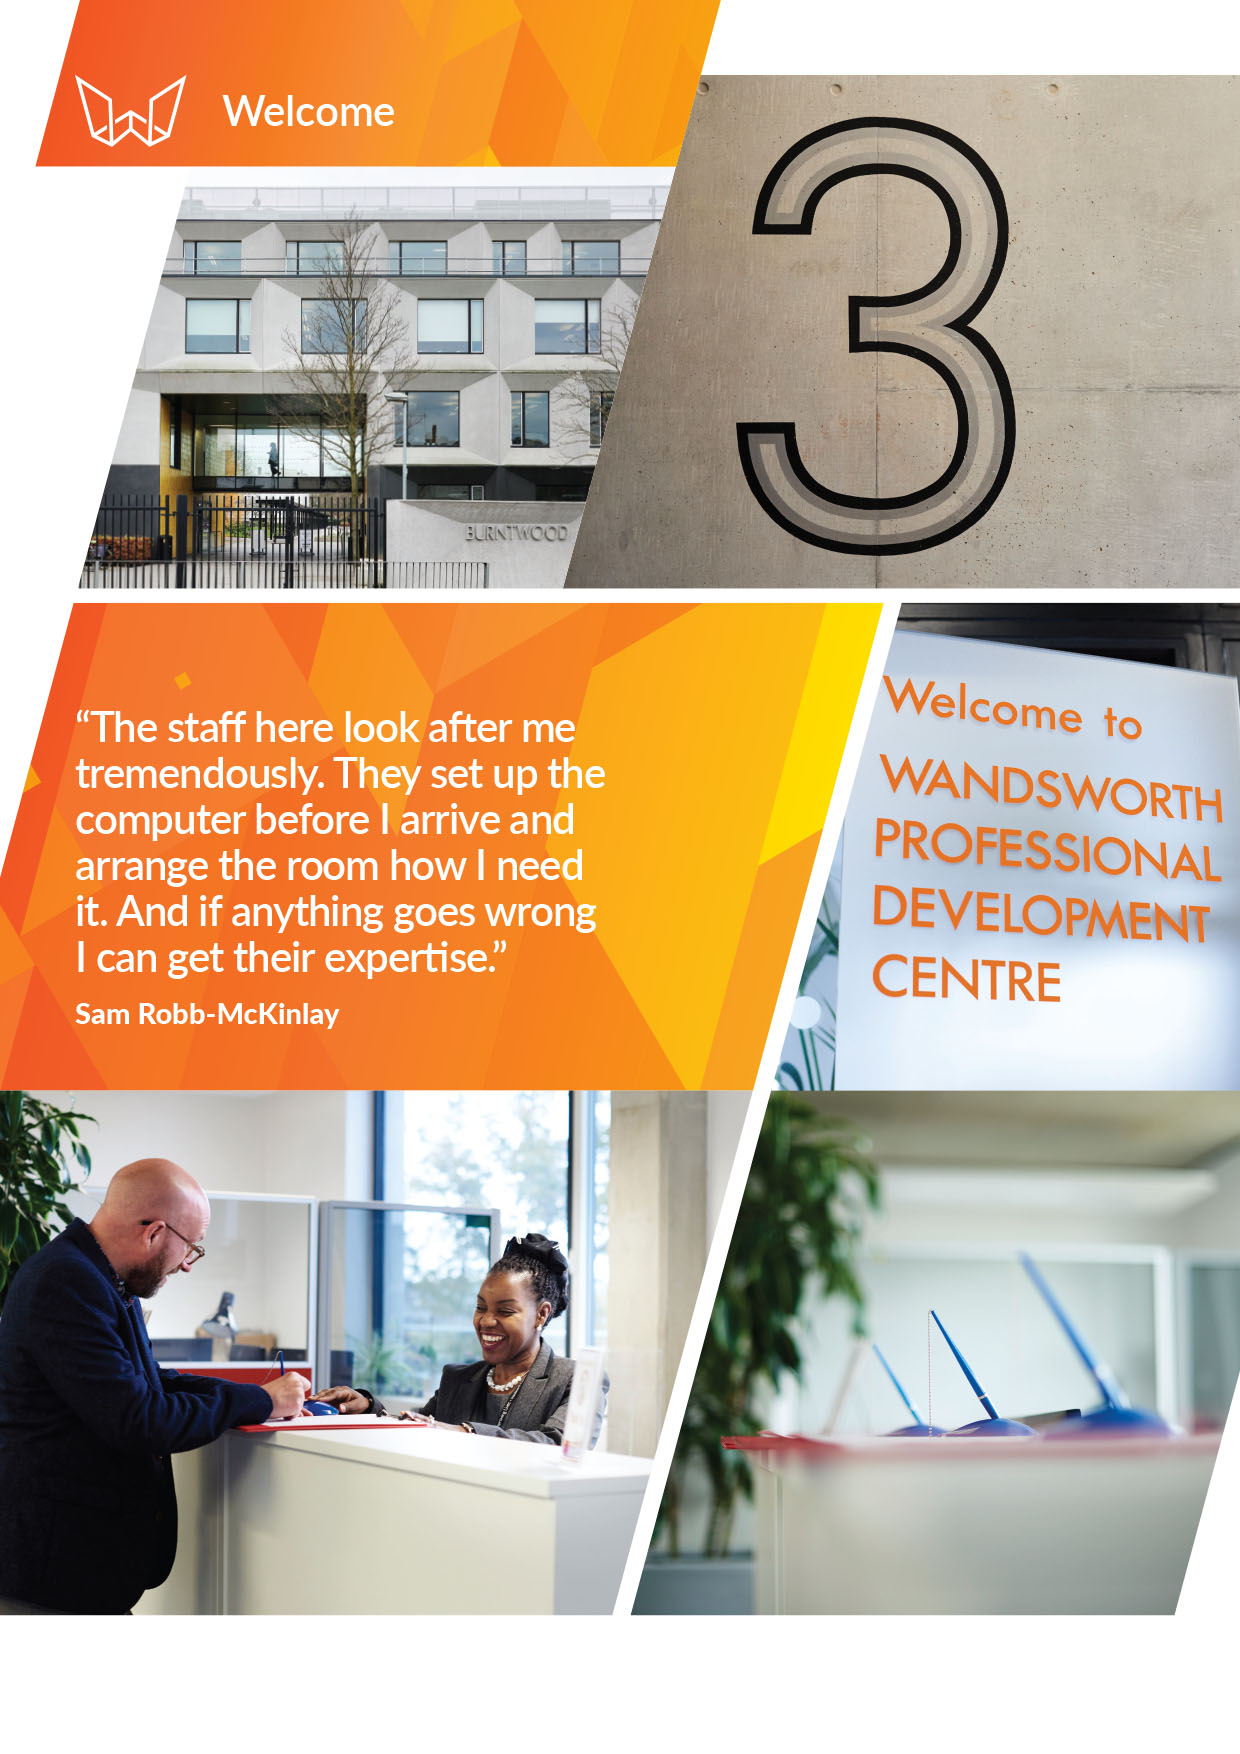 Wandsworth Professional Development Centre, Inside Front Cover, Designed by West Creative